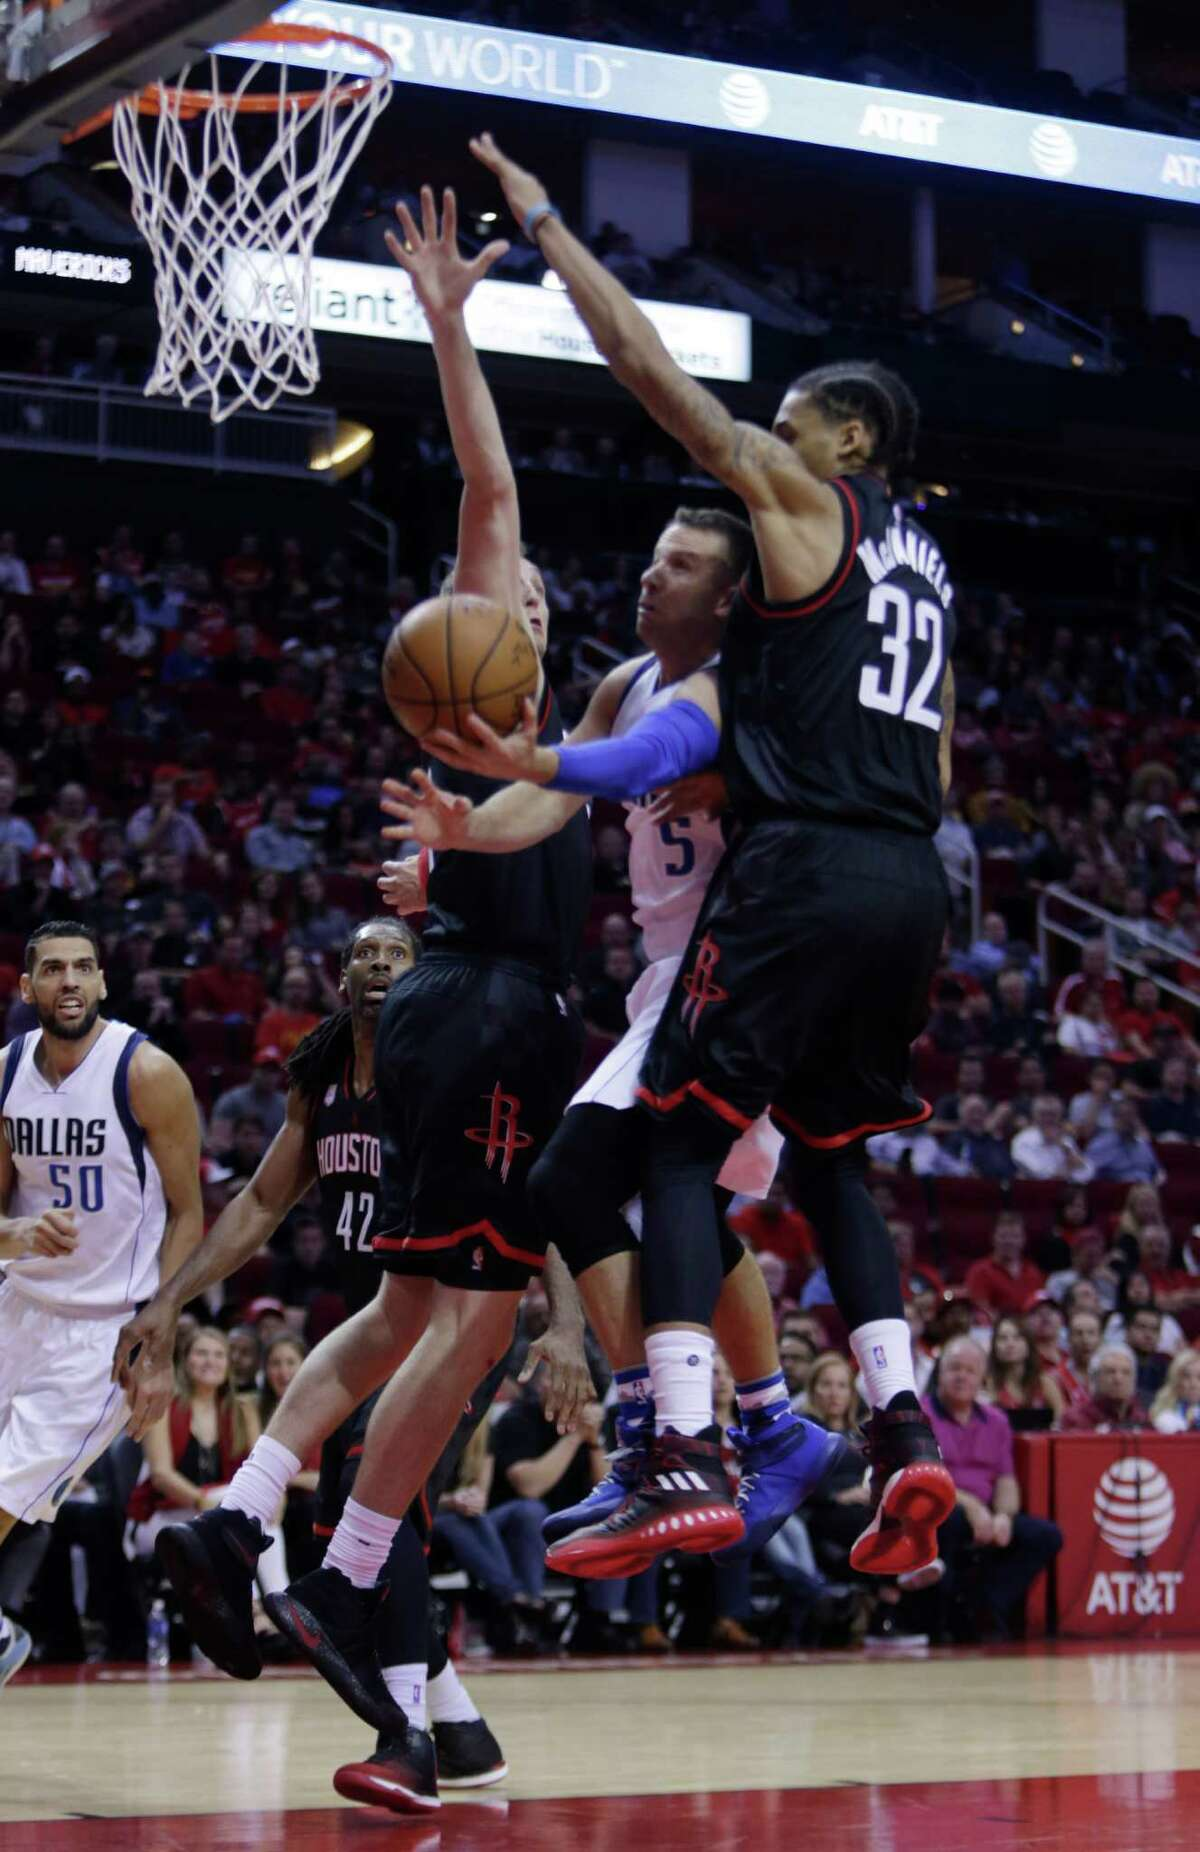 Houston Rockets guard K.J. McDaniels (32) goes up to eventually block a Dallas Mavericks guard J.J. Barea (5) shot during the Houston Rockets game against the Dallas Mavericks at the Toyota Center, Sunday, Oct. 30, 2016, in Houston.